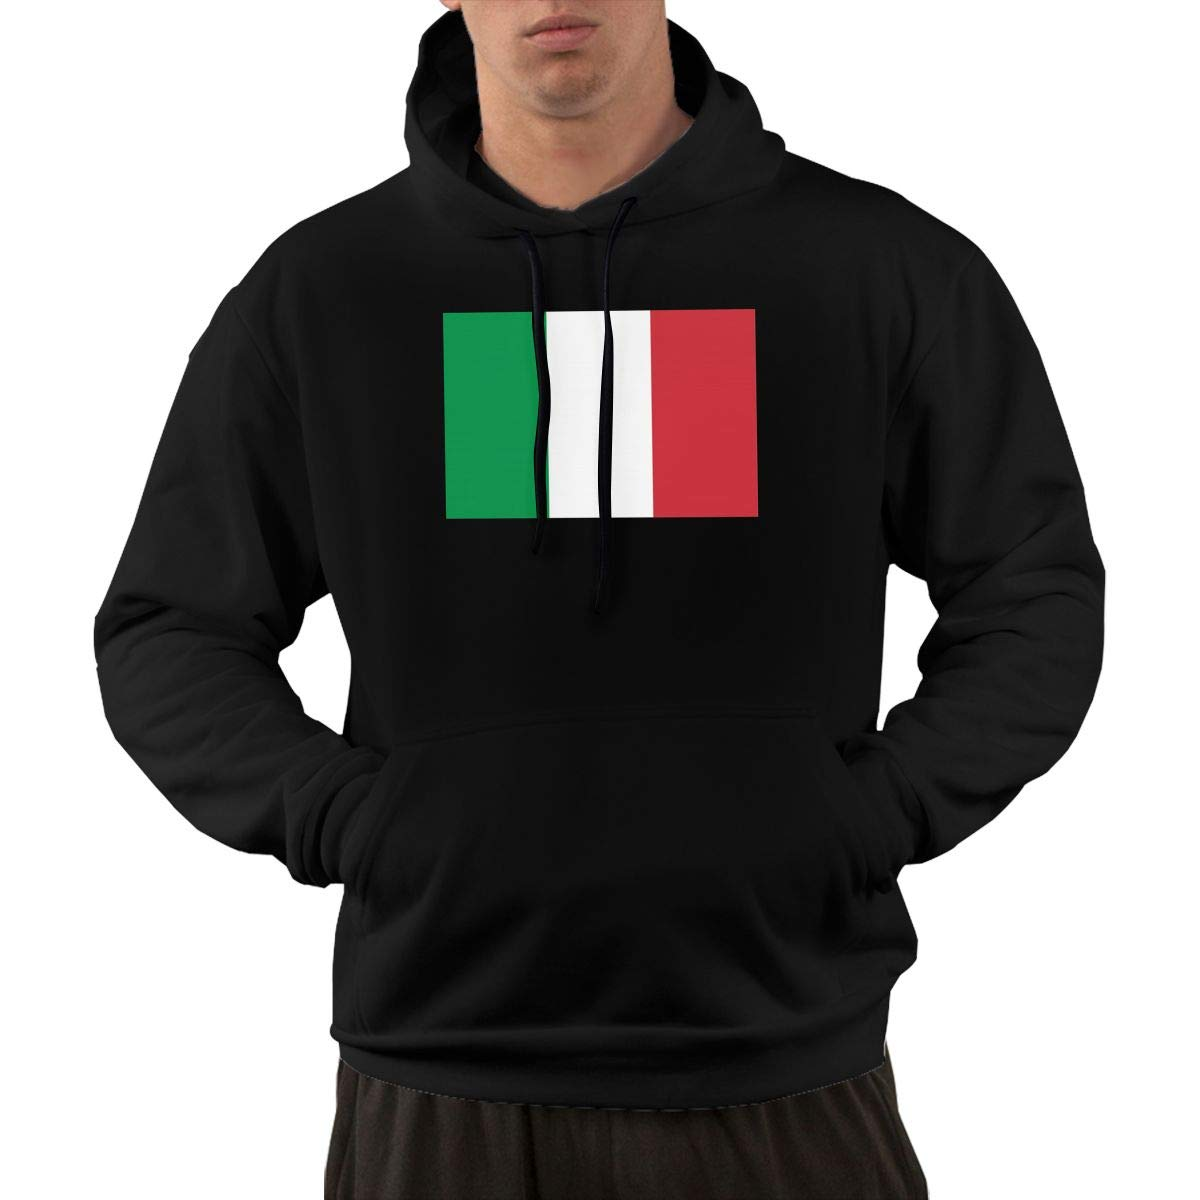 Flag of Italy Hoodie Mens Performance Active Hooded Sweatshirt Jacket Pullover with Front Pocket